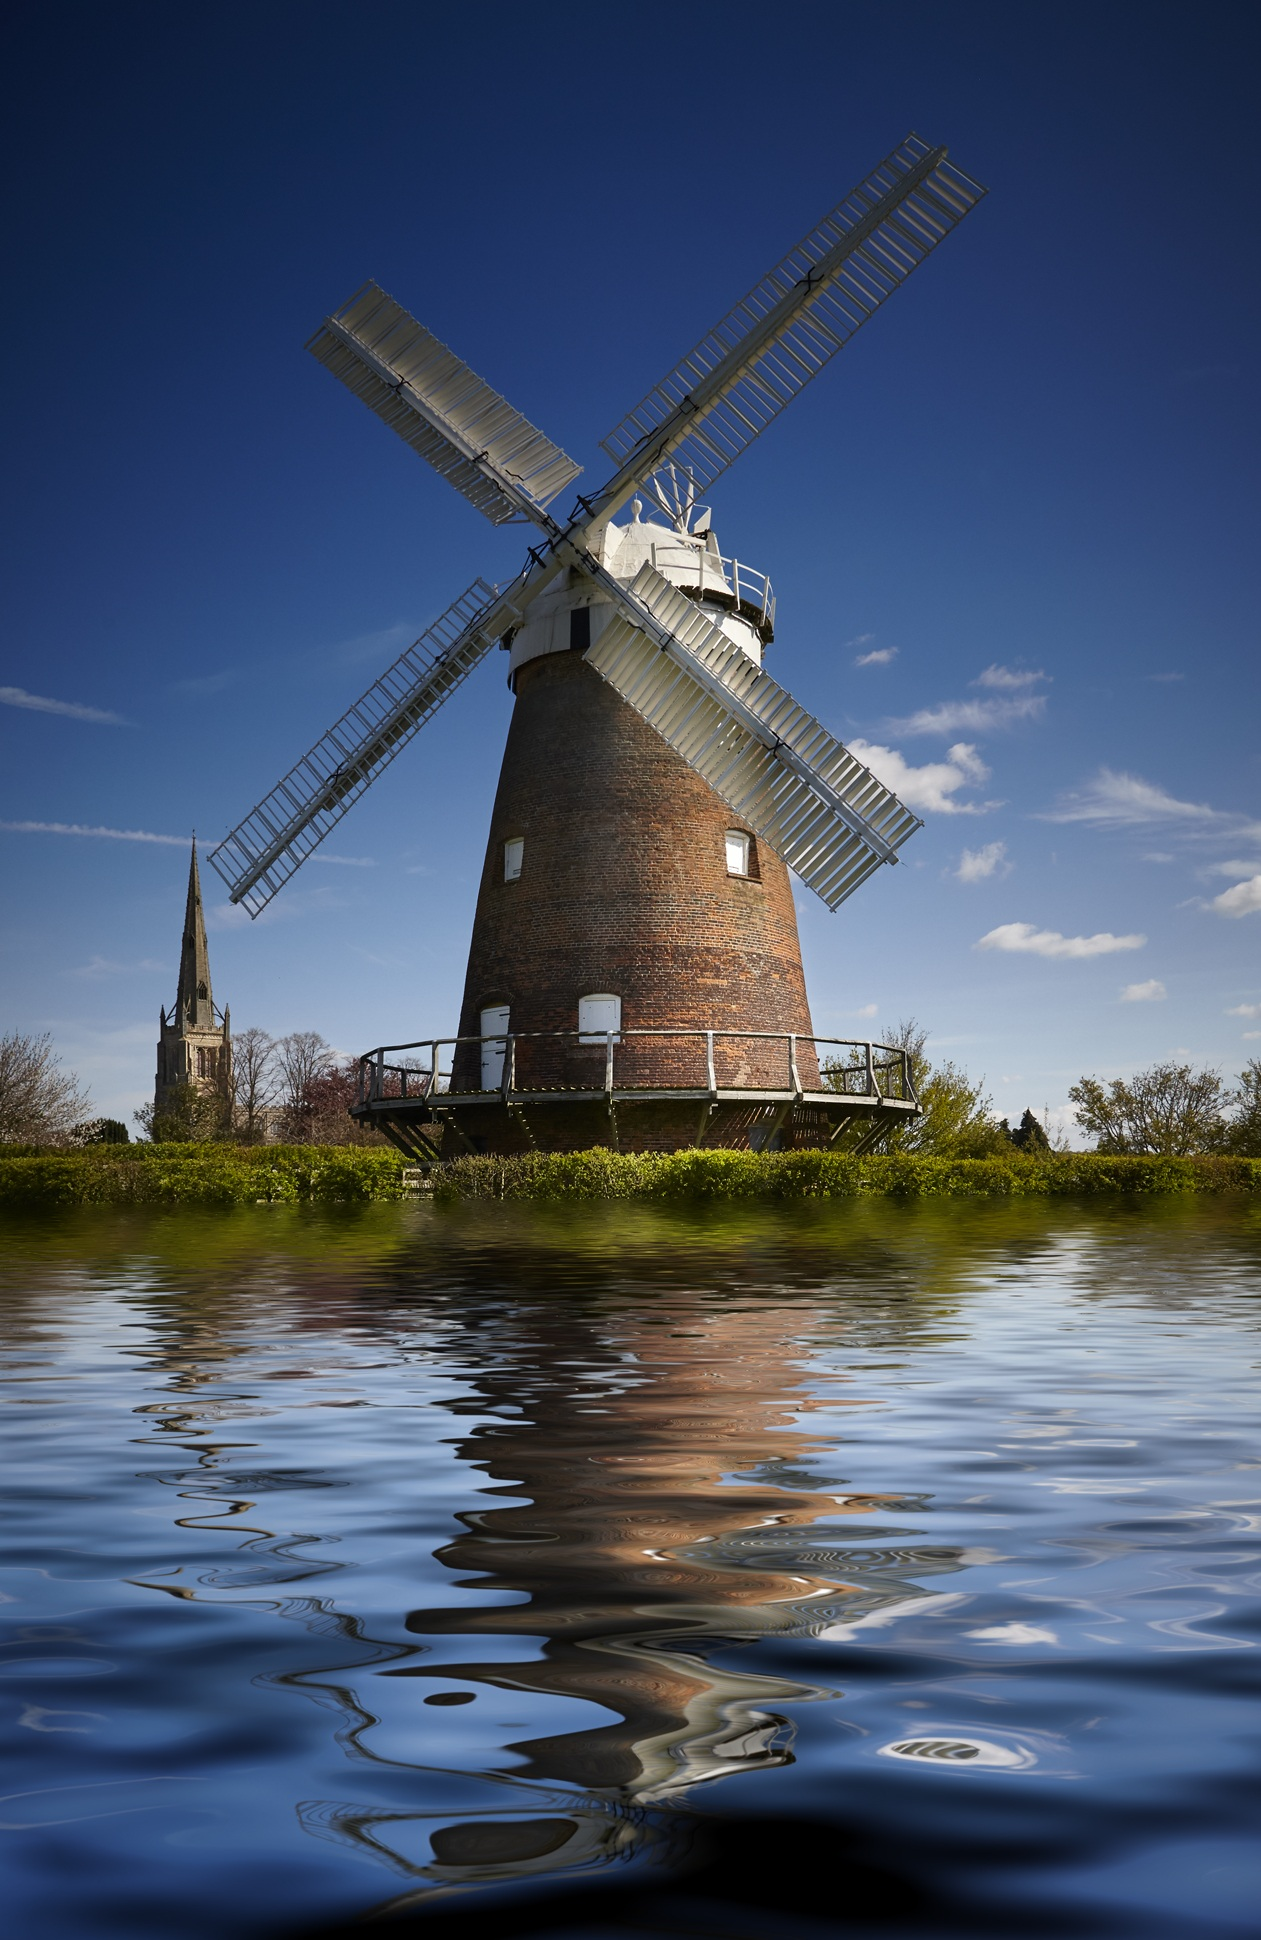 Photography of Windmill Under Blue Sky during Daytime